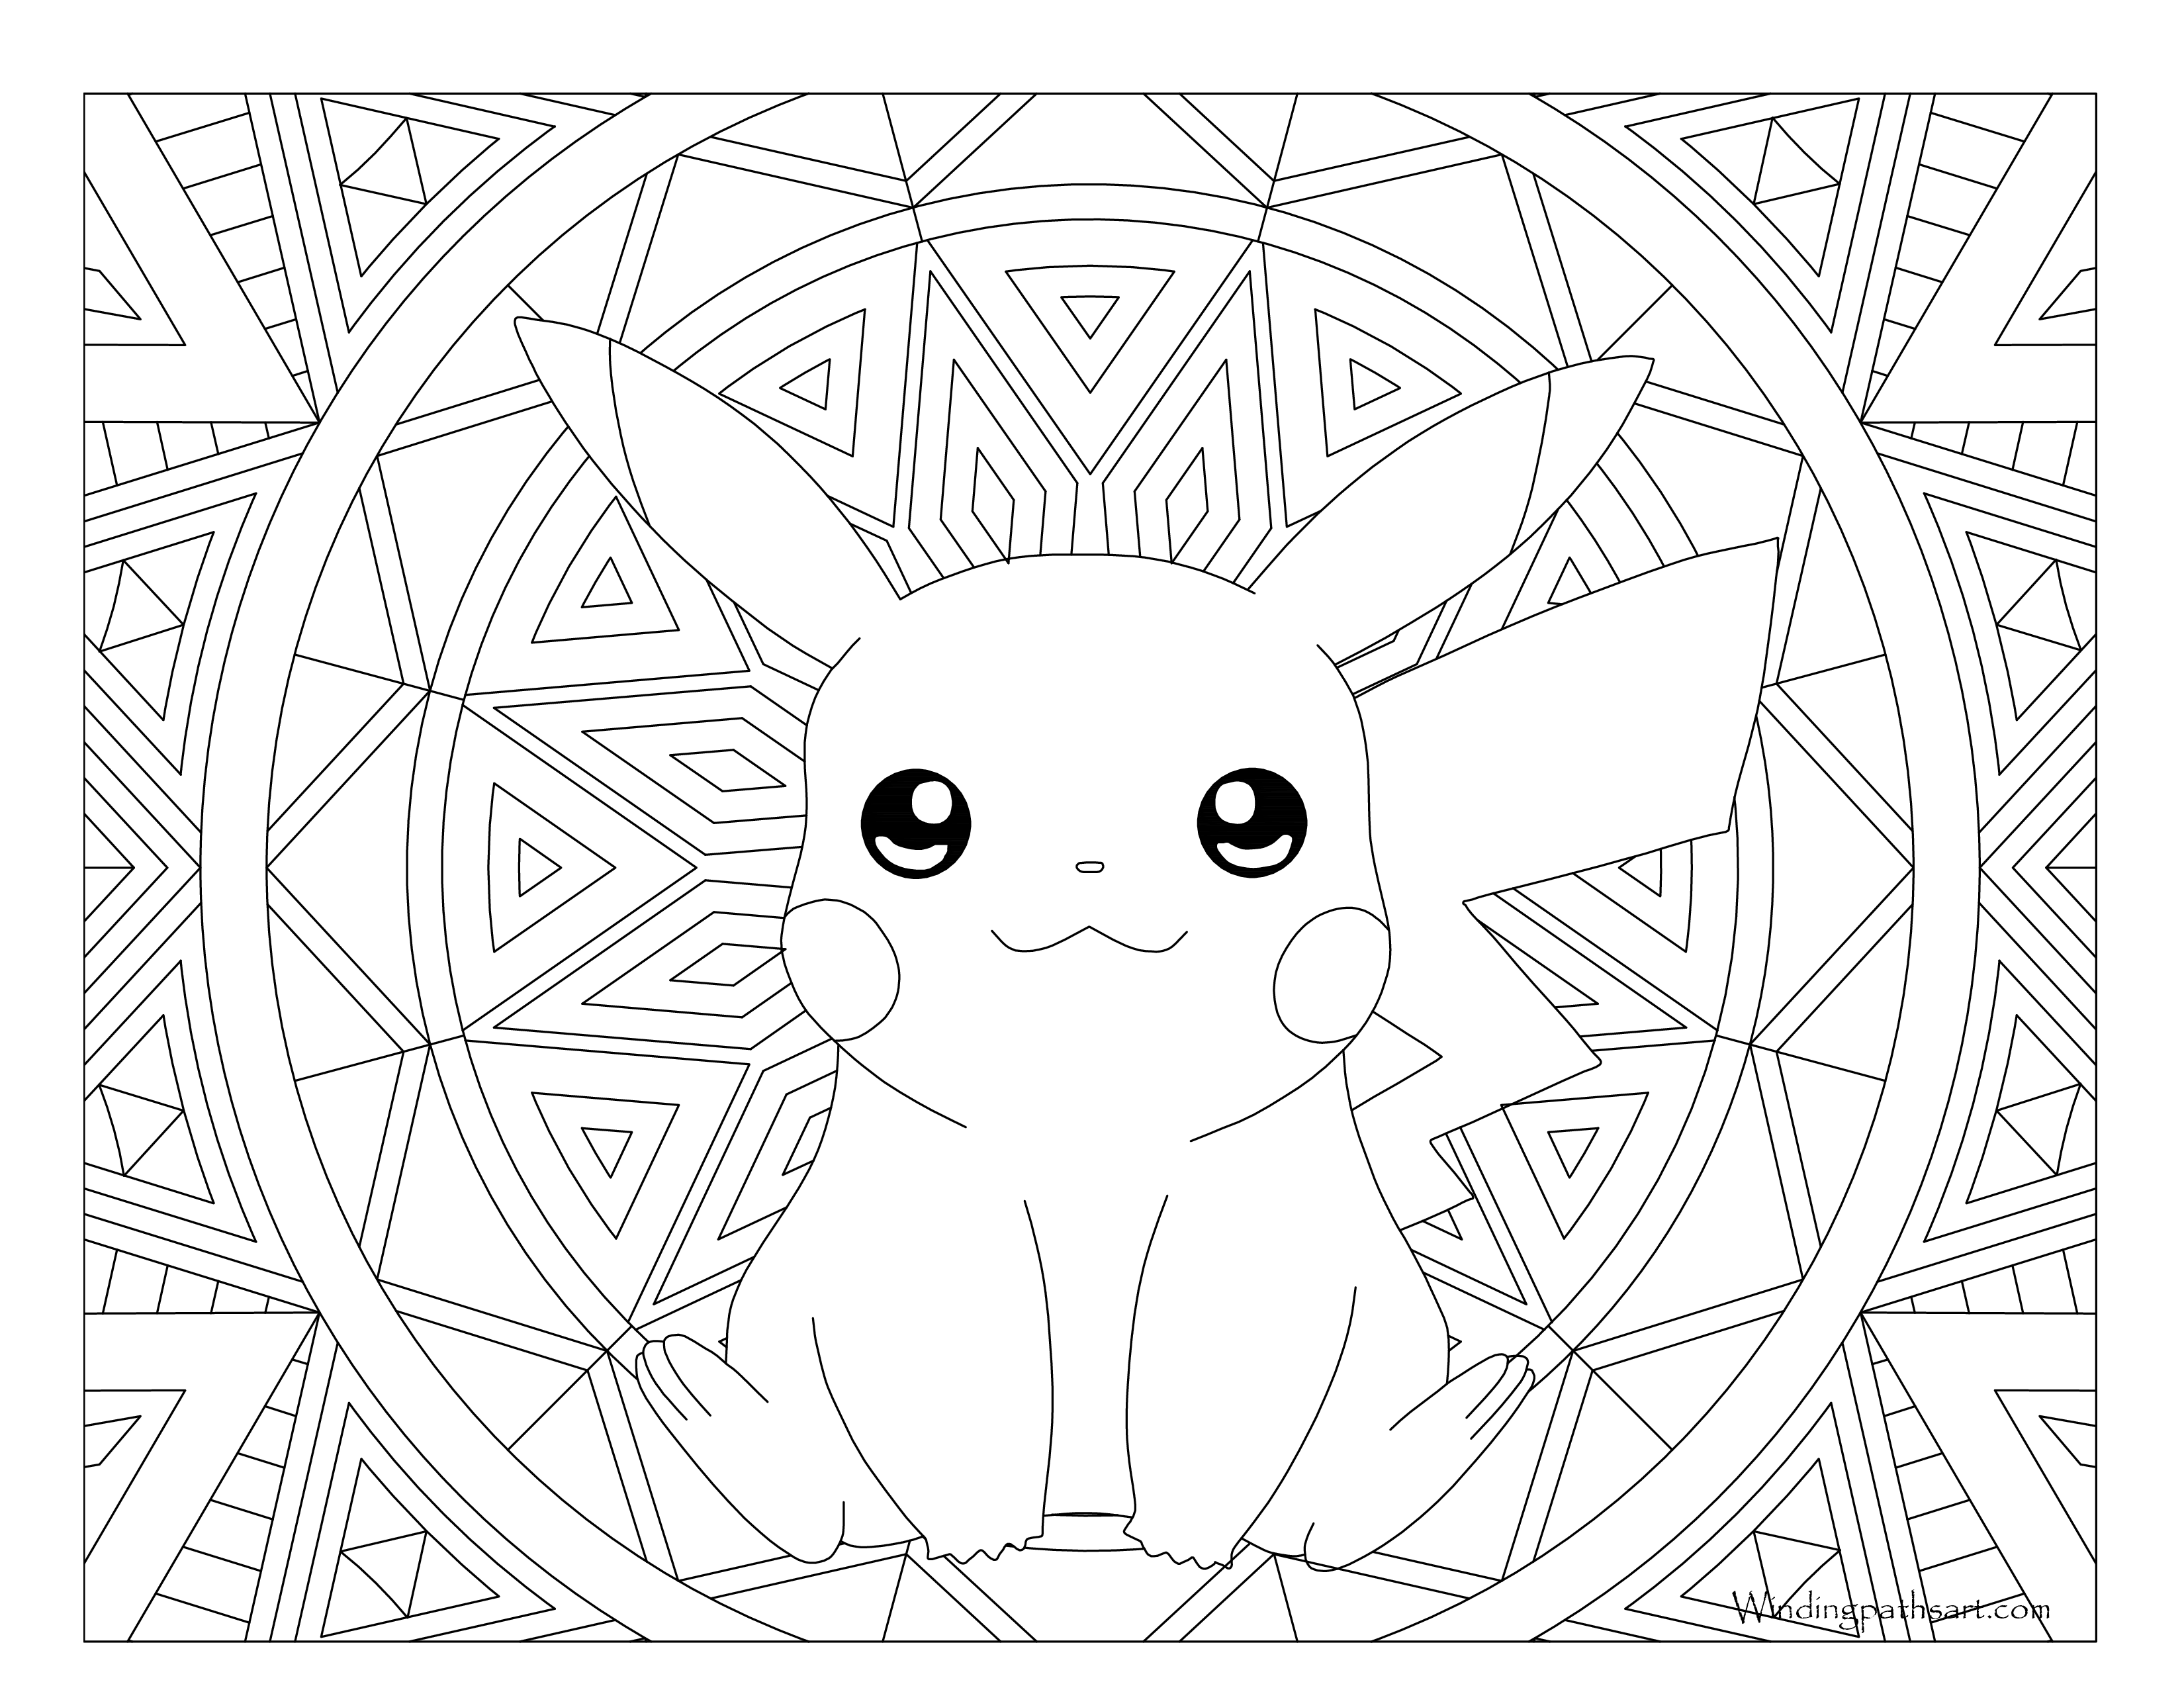 025 Pikachu Pokemon Coloring Page